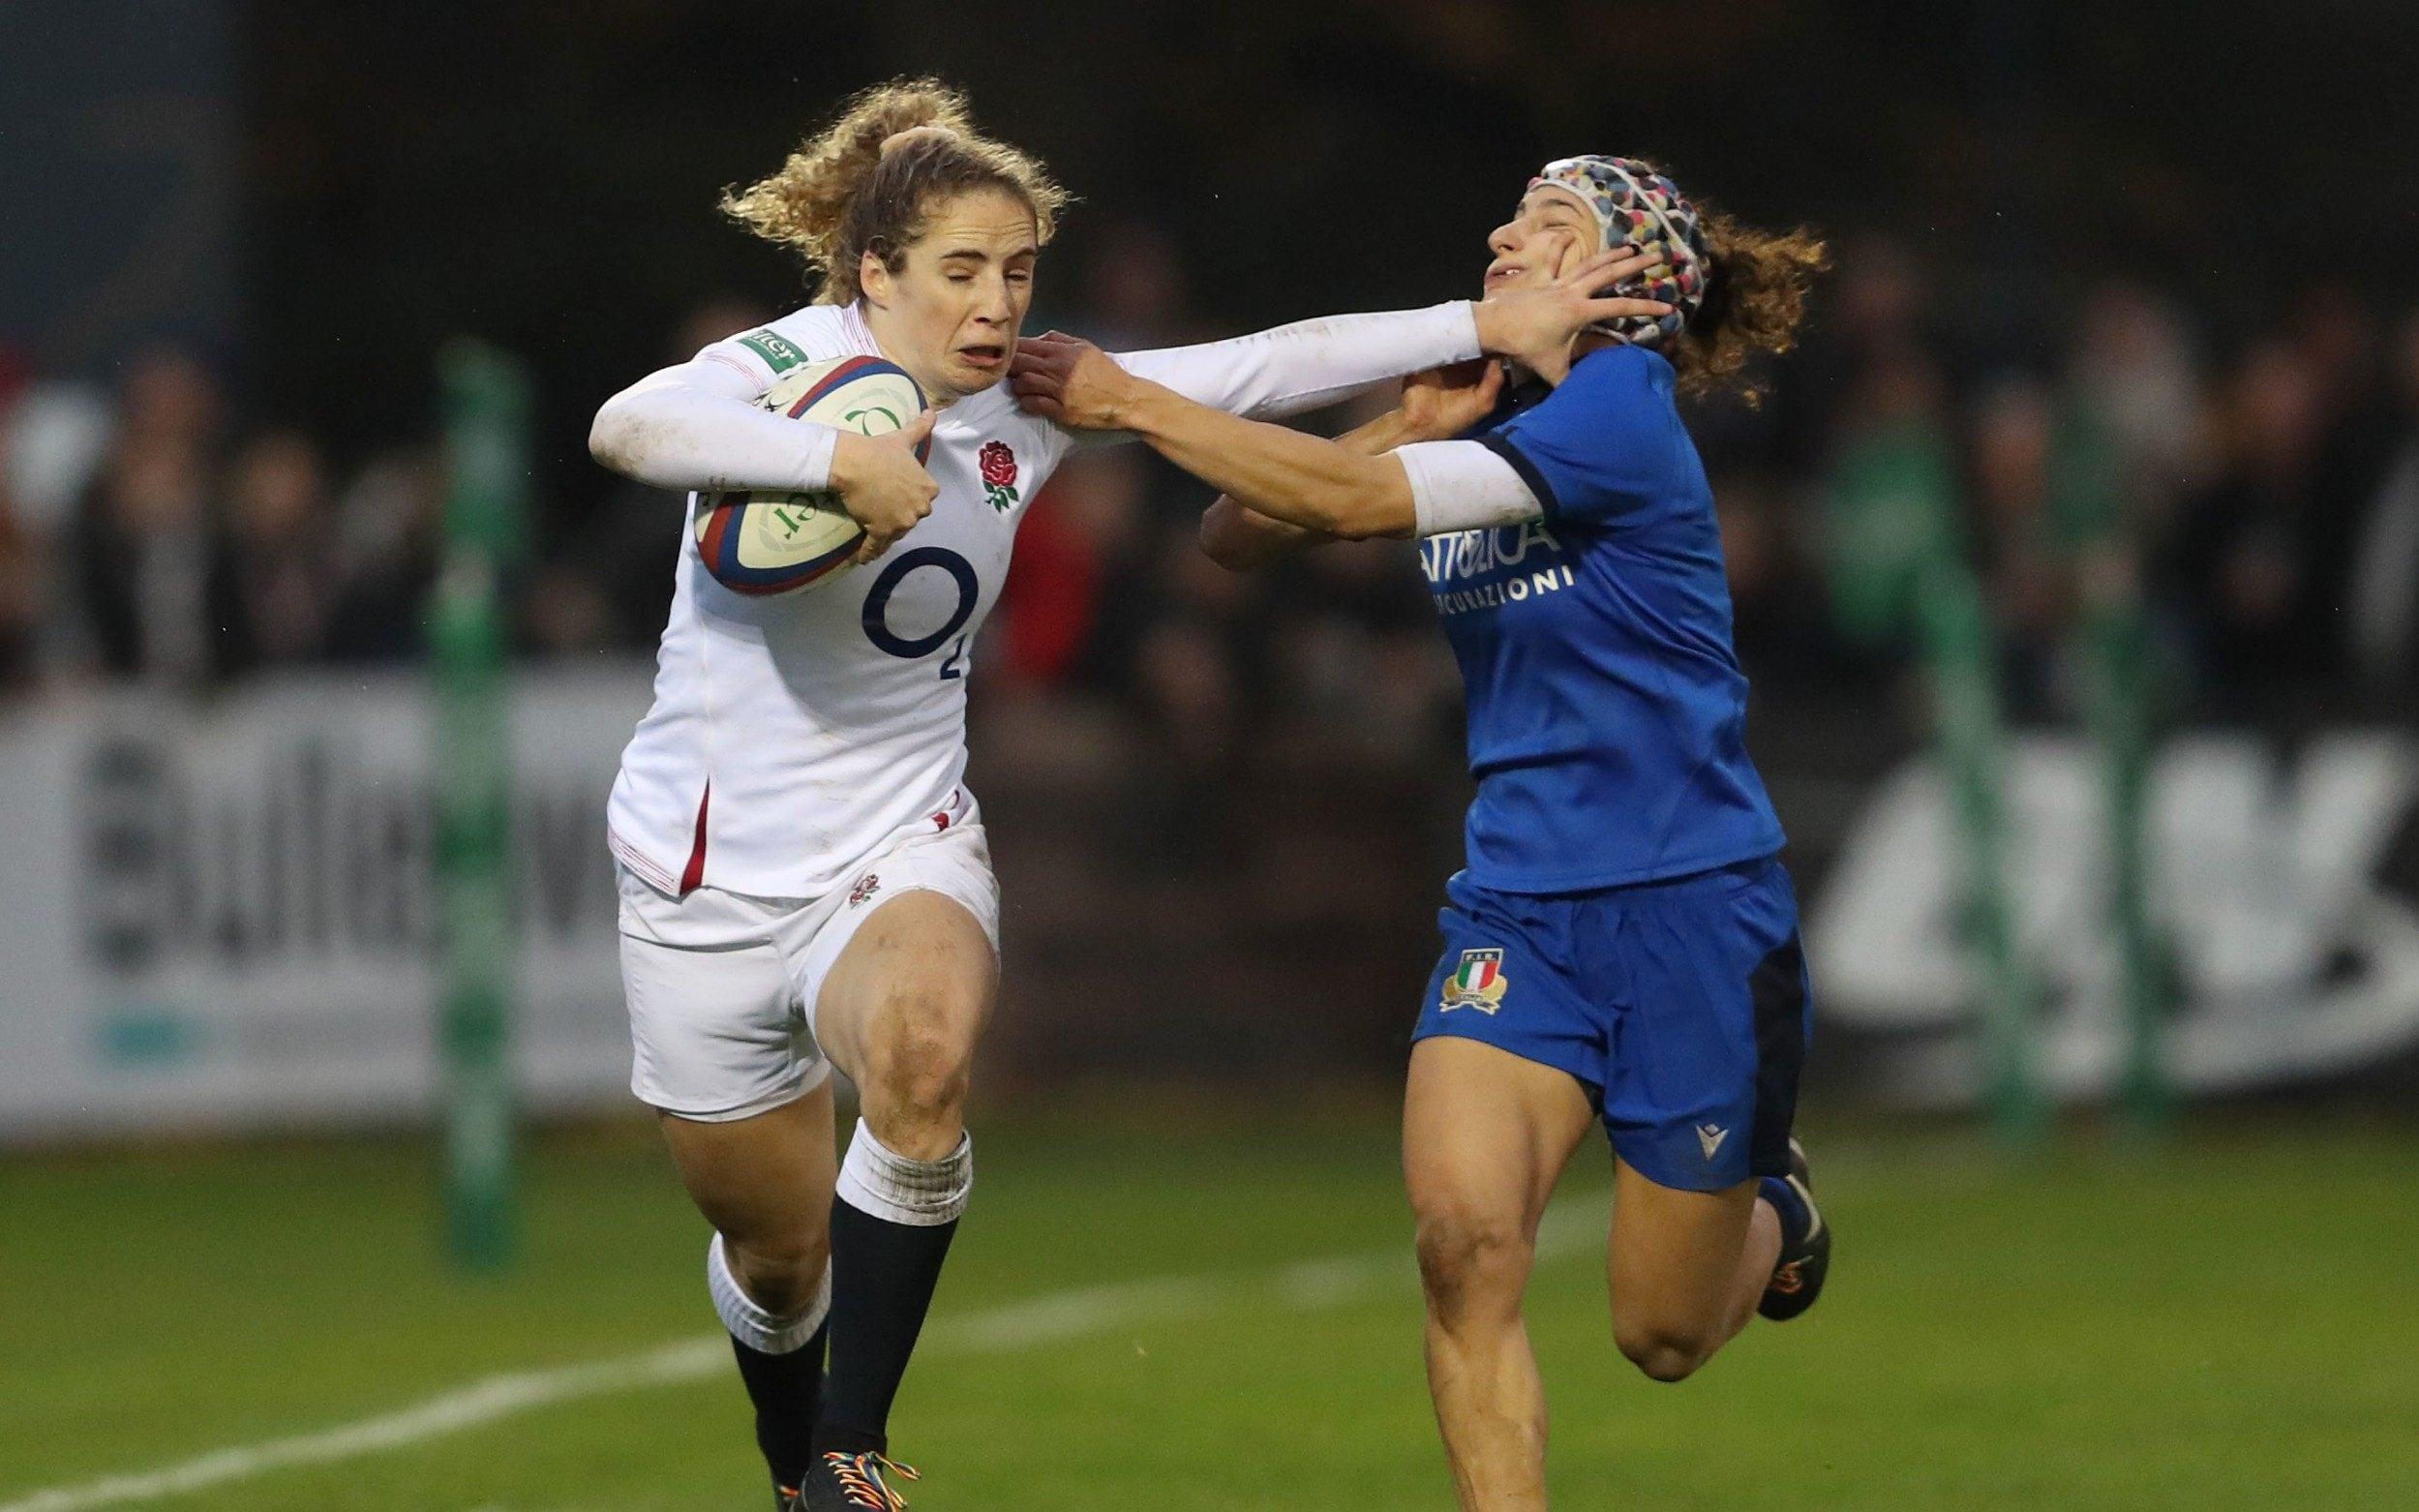 On the eve of the Six Nations we speak with England flier Abby Dow